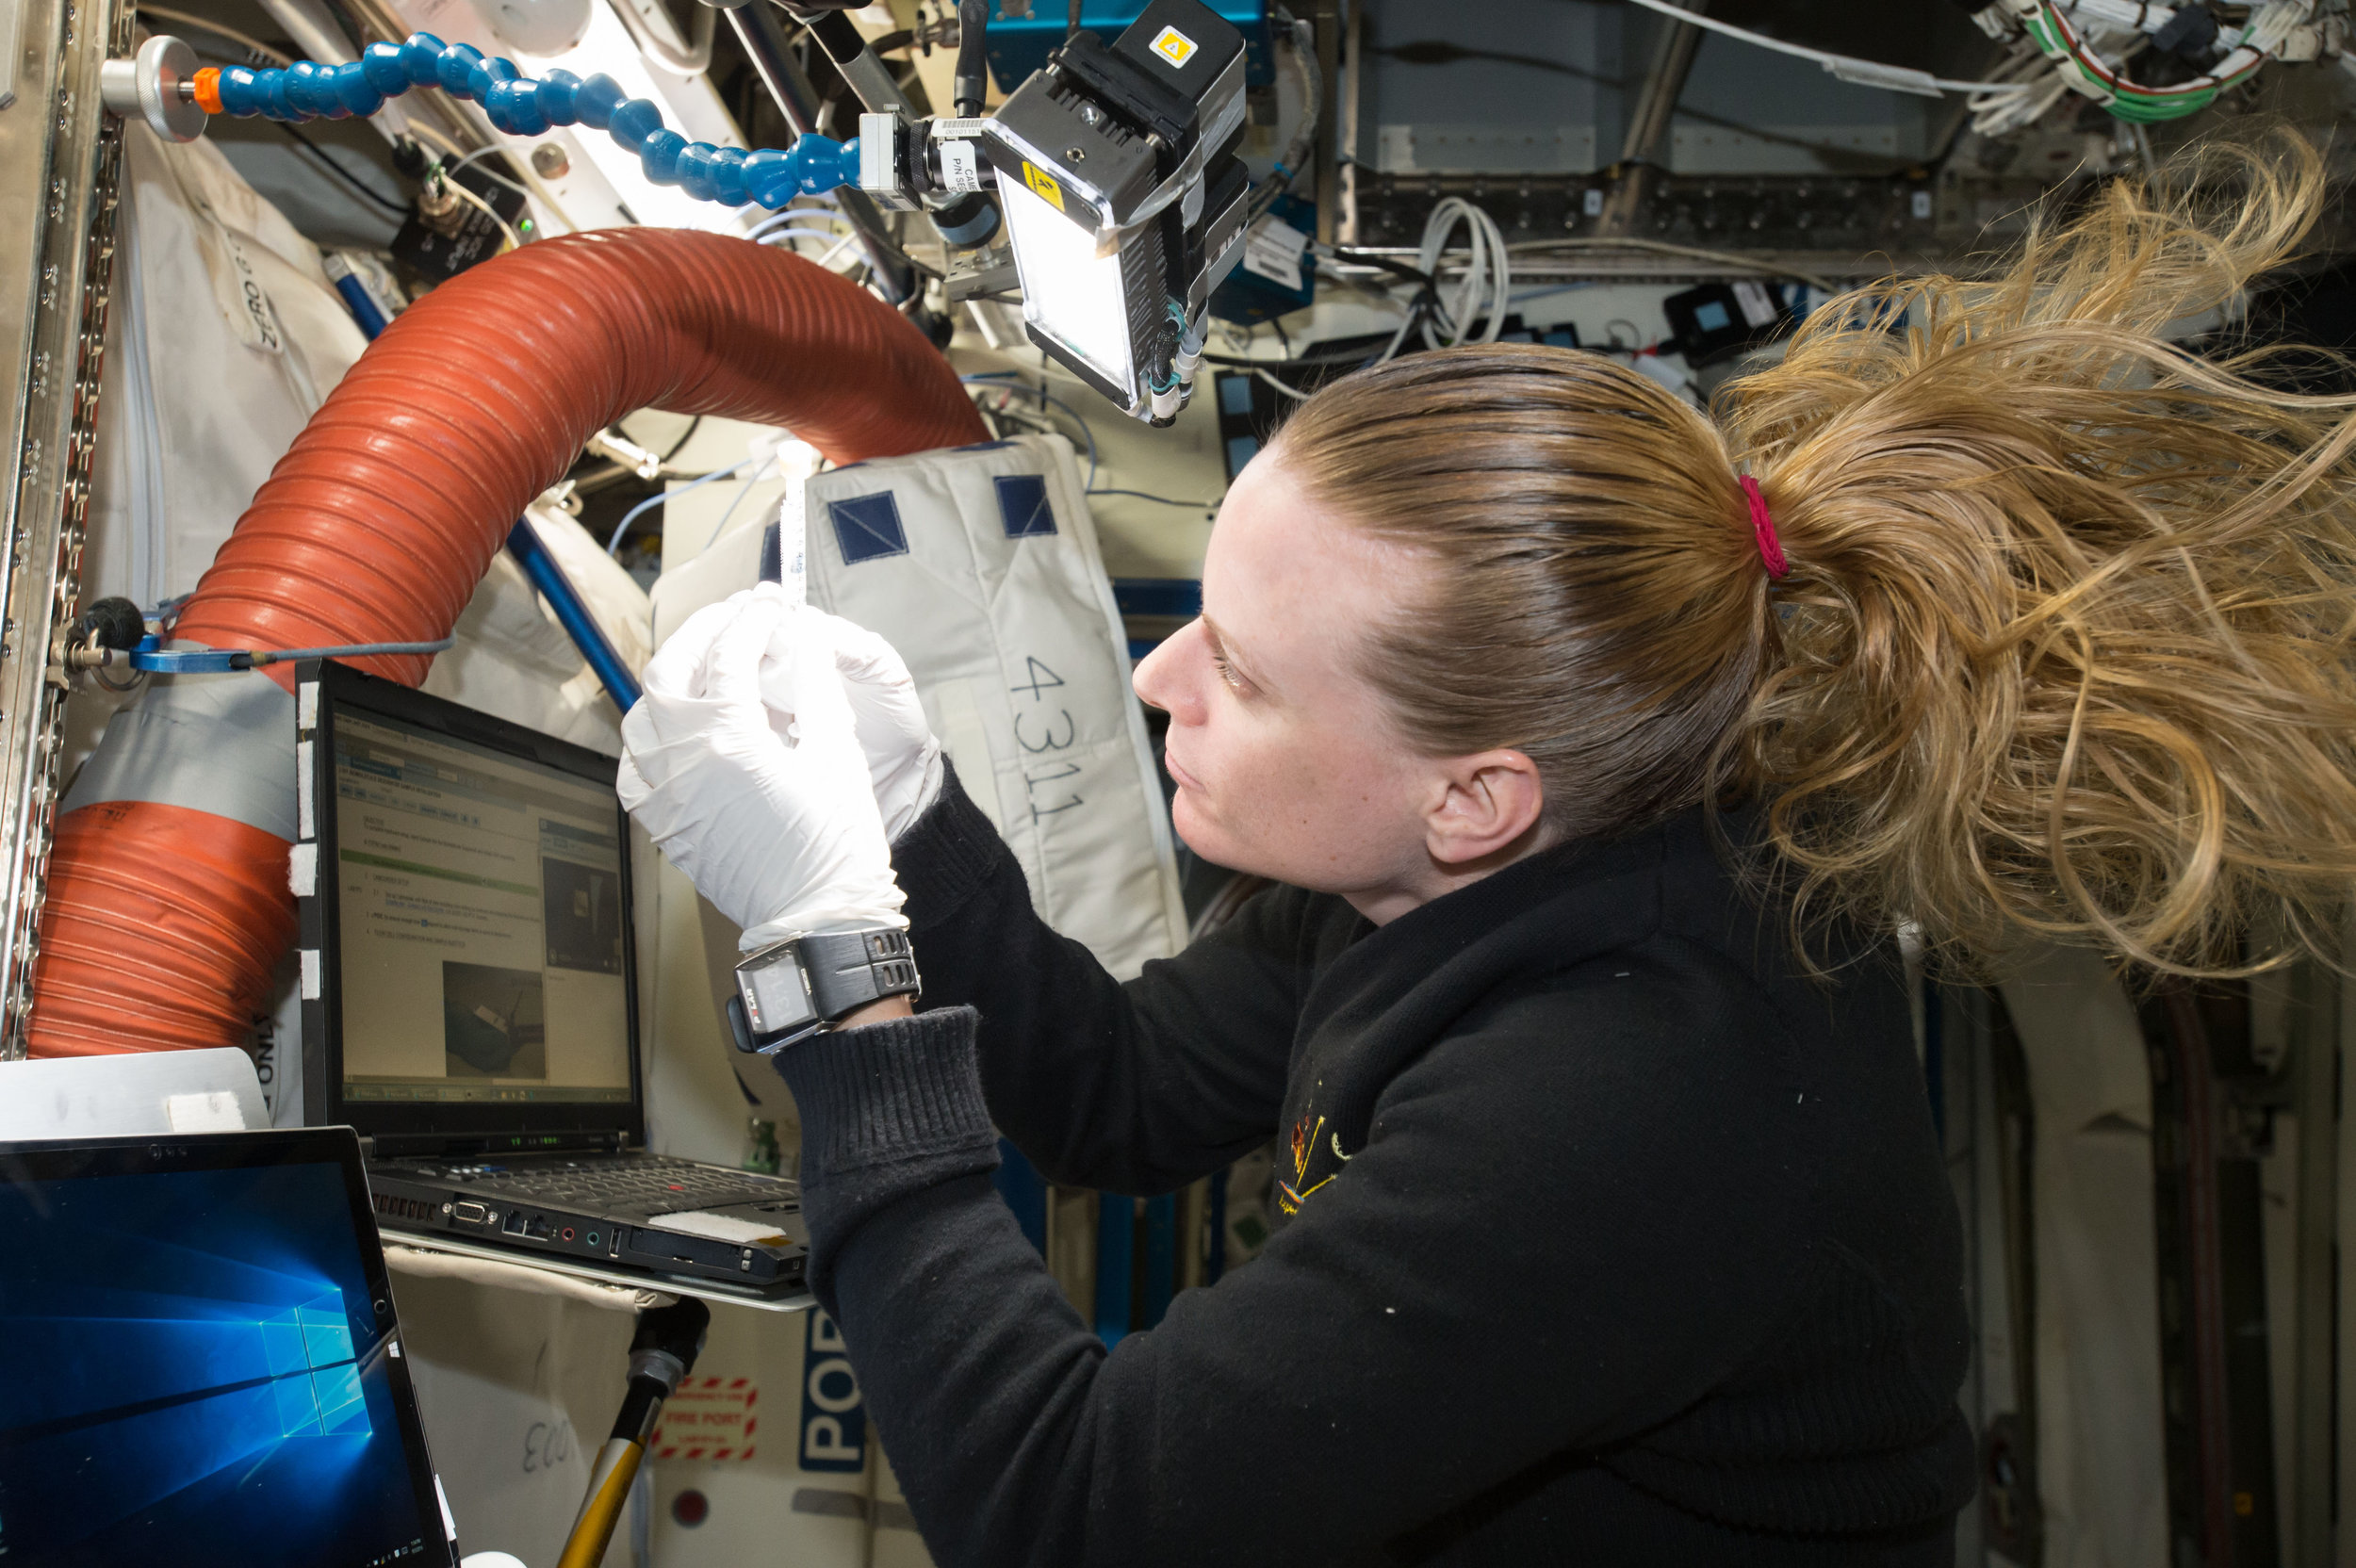 Aboard the International Space Station, NASA astronaut Kate Rubins checks a sample for air bubbles prior to loading it in the biomolecule sequencer. When Rubins' expedition began, zero base pairs of DNA had been sequenced in space. Within just a few weeks,  she and the Biomolecule Sequencer team had sequenced  their  one billionth base of DNA on the orbiting laboratory .